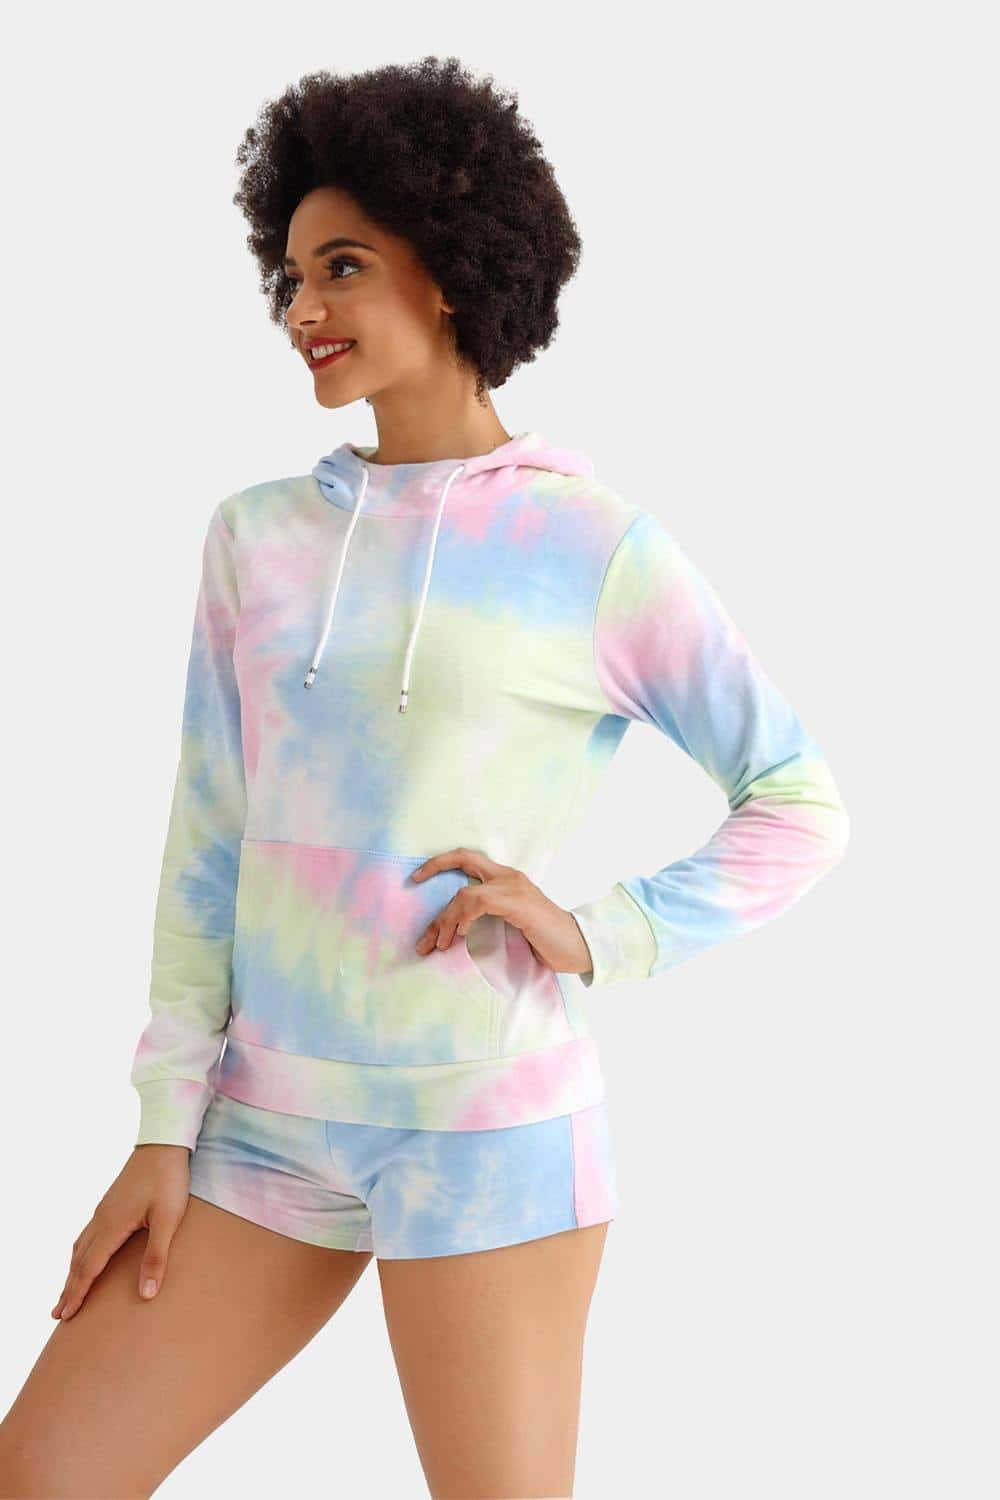 Cotton Tie dye Hooded Sweatshirt Set